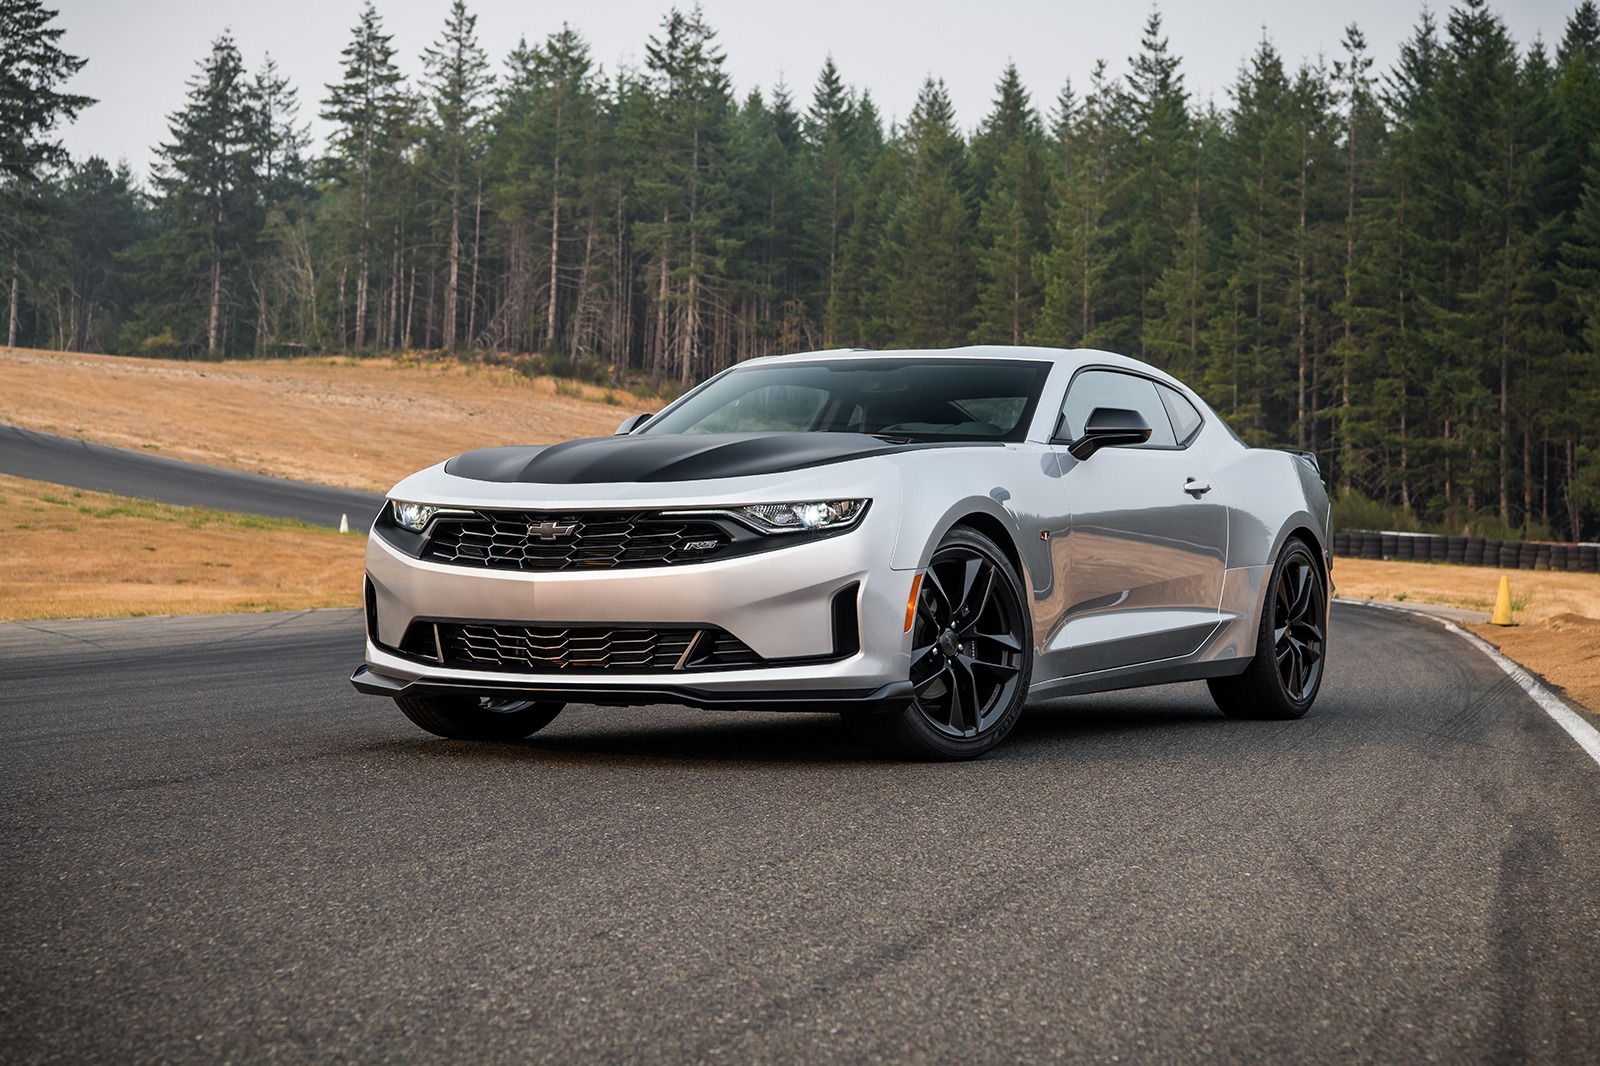 Chevrolet Camaro Turbo 1LE 2019